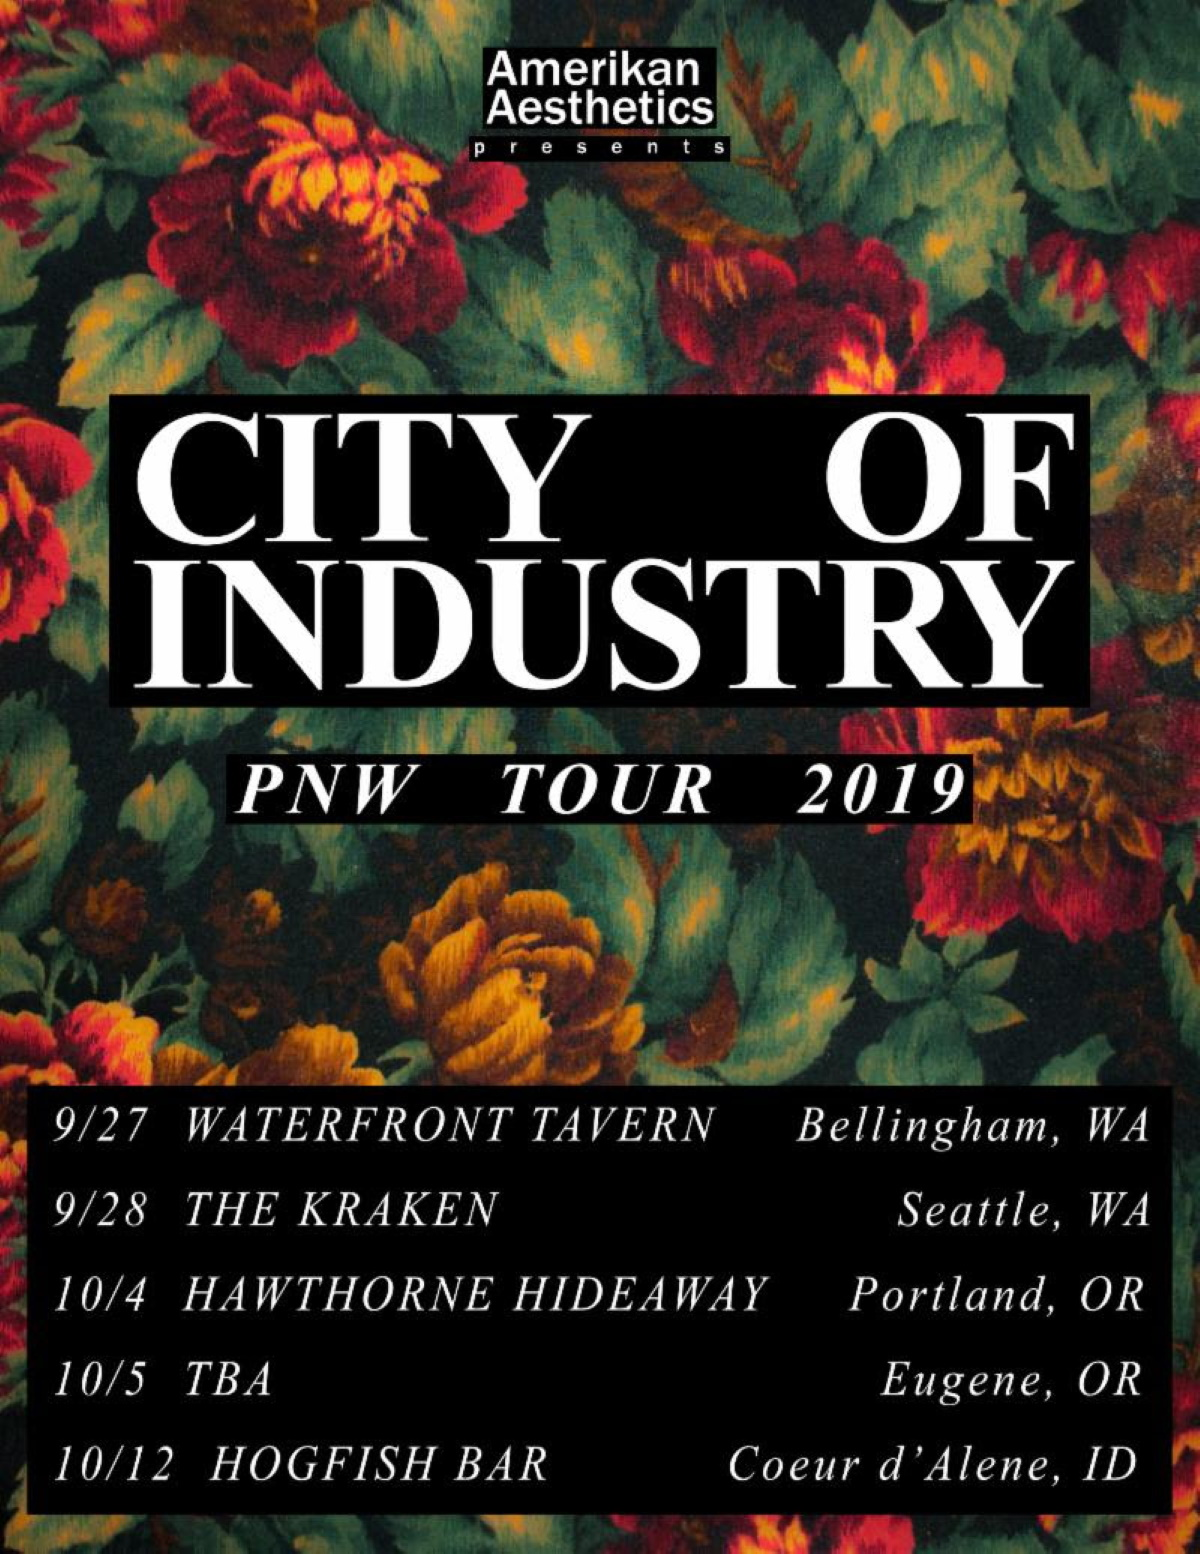 CITY OF INDUSTRY tour